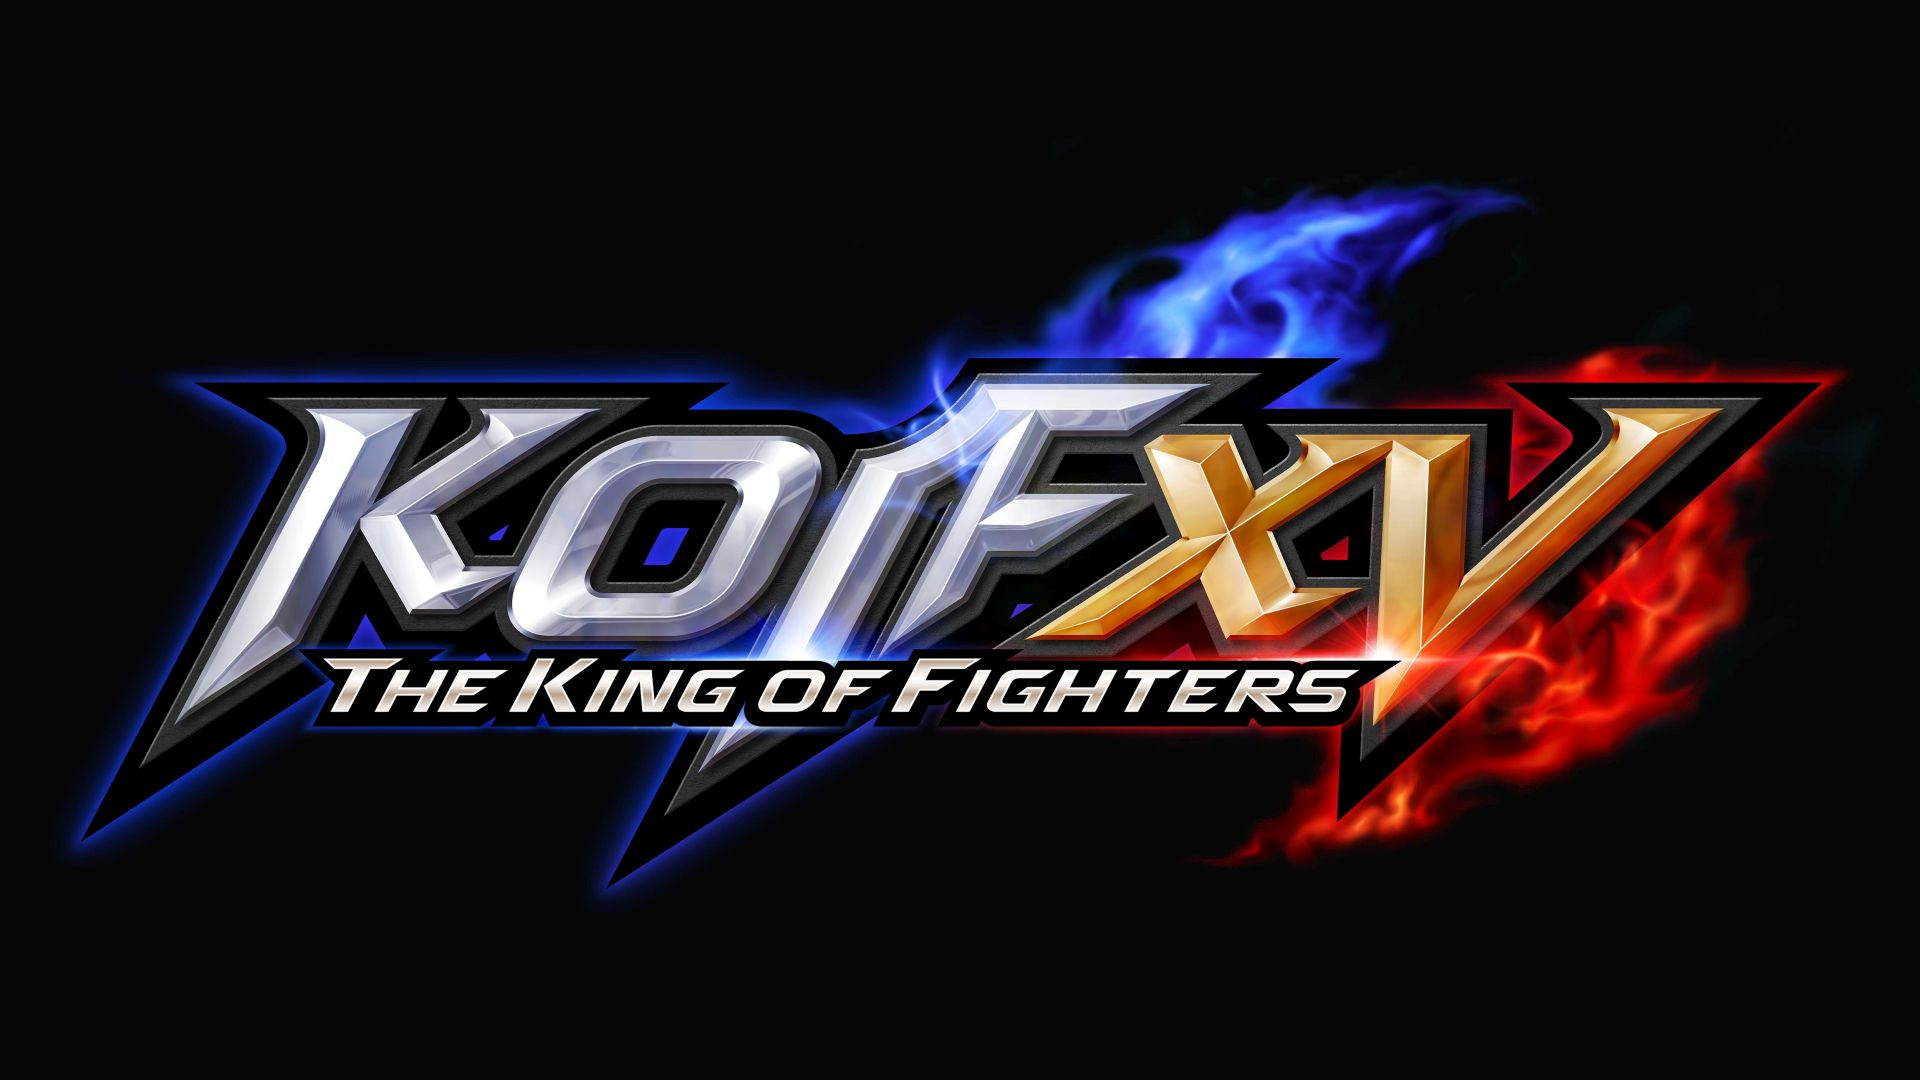 ¡El tráiler oficial de THE KING OF FIGHTERS XV llegará en enero!